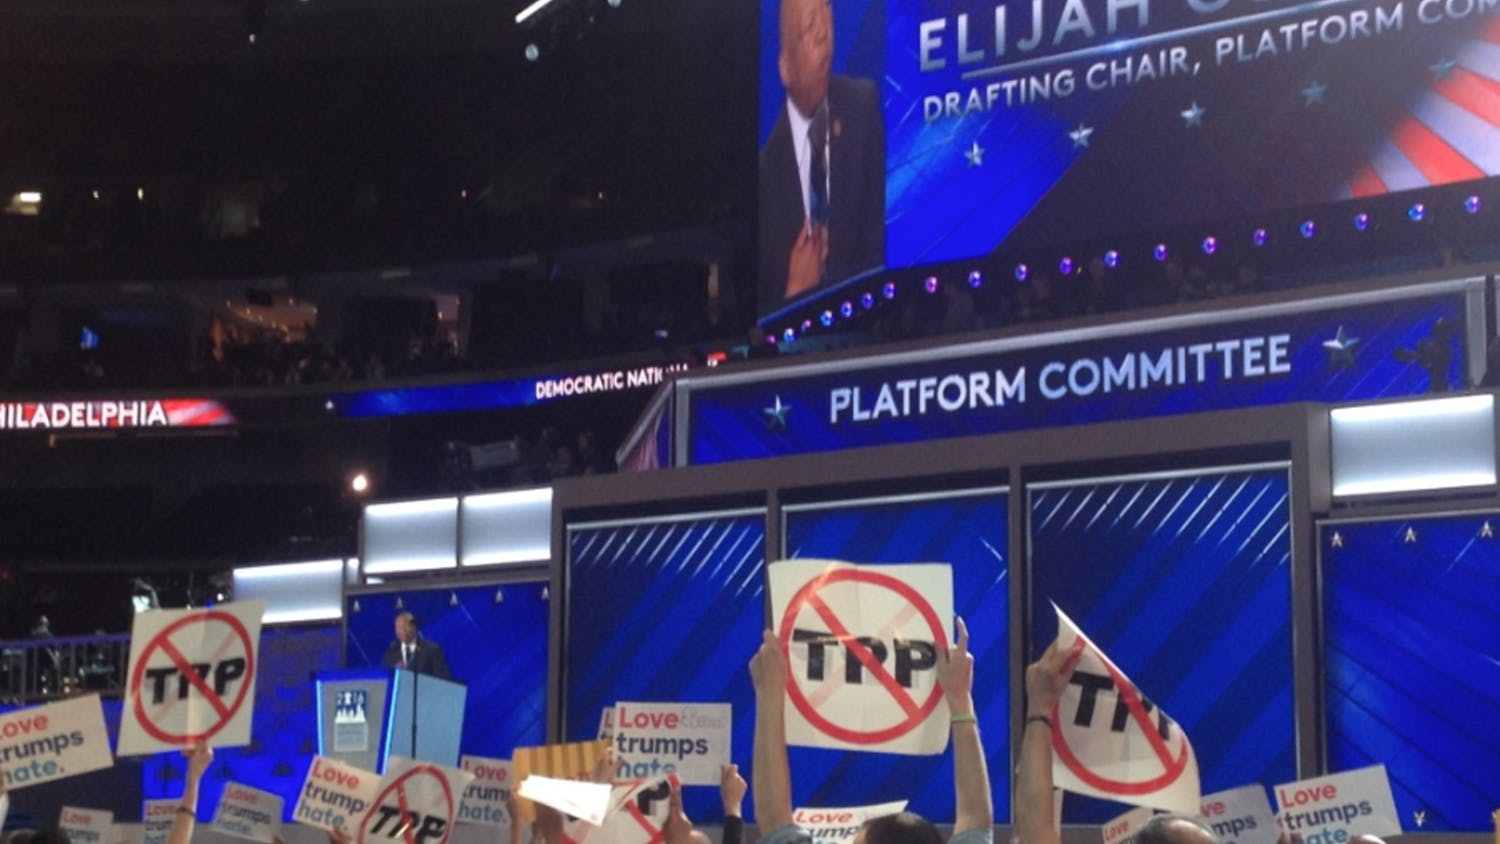 Maryland Congressman Elijah Cummings speaks on the first day of the Democratic National Convention in Philadelphia on July 25, 2016.